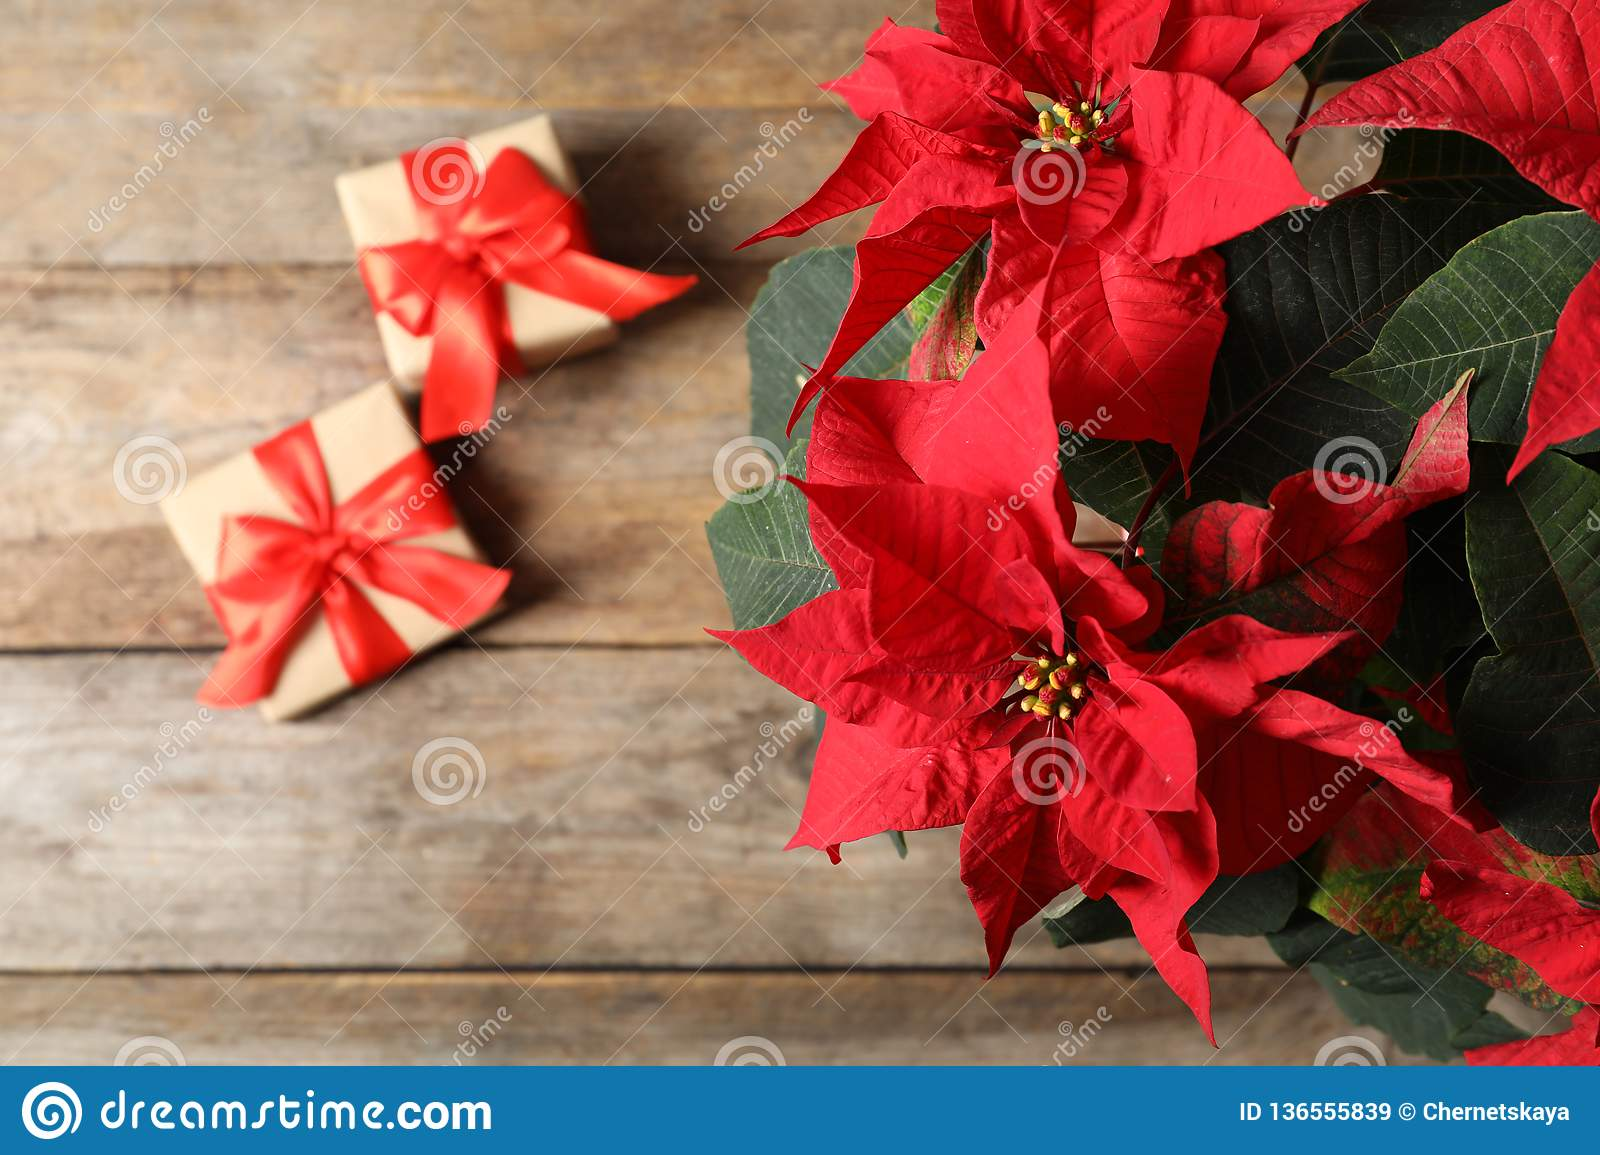 Poinsettia Traditional Christmas Flower With Gift Boxes On Wooden